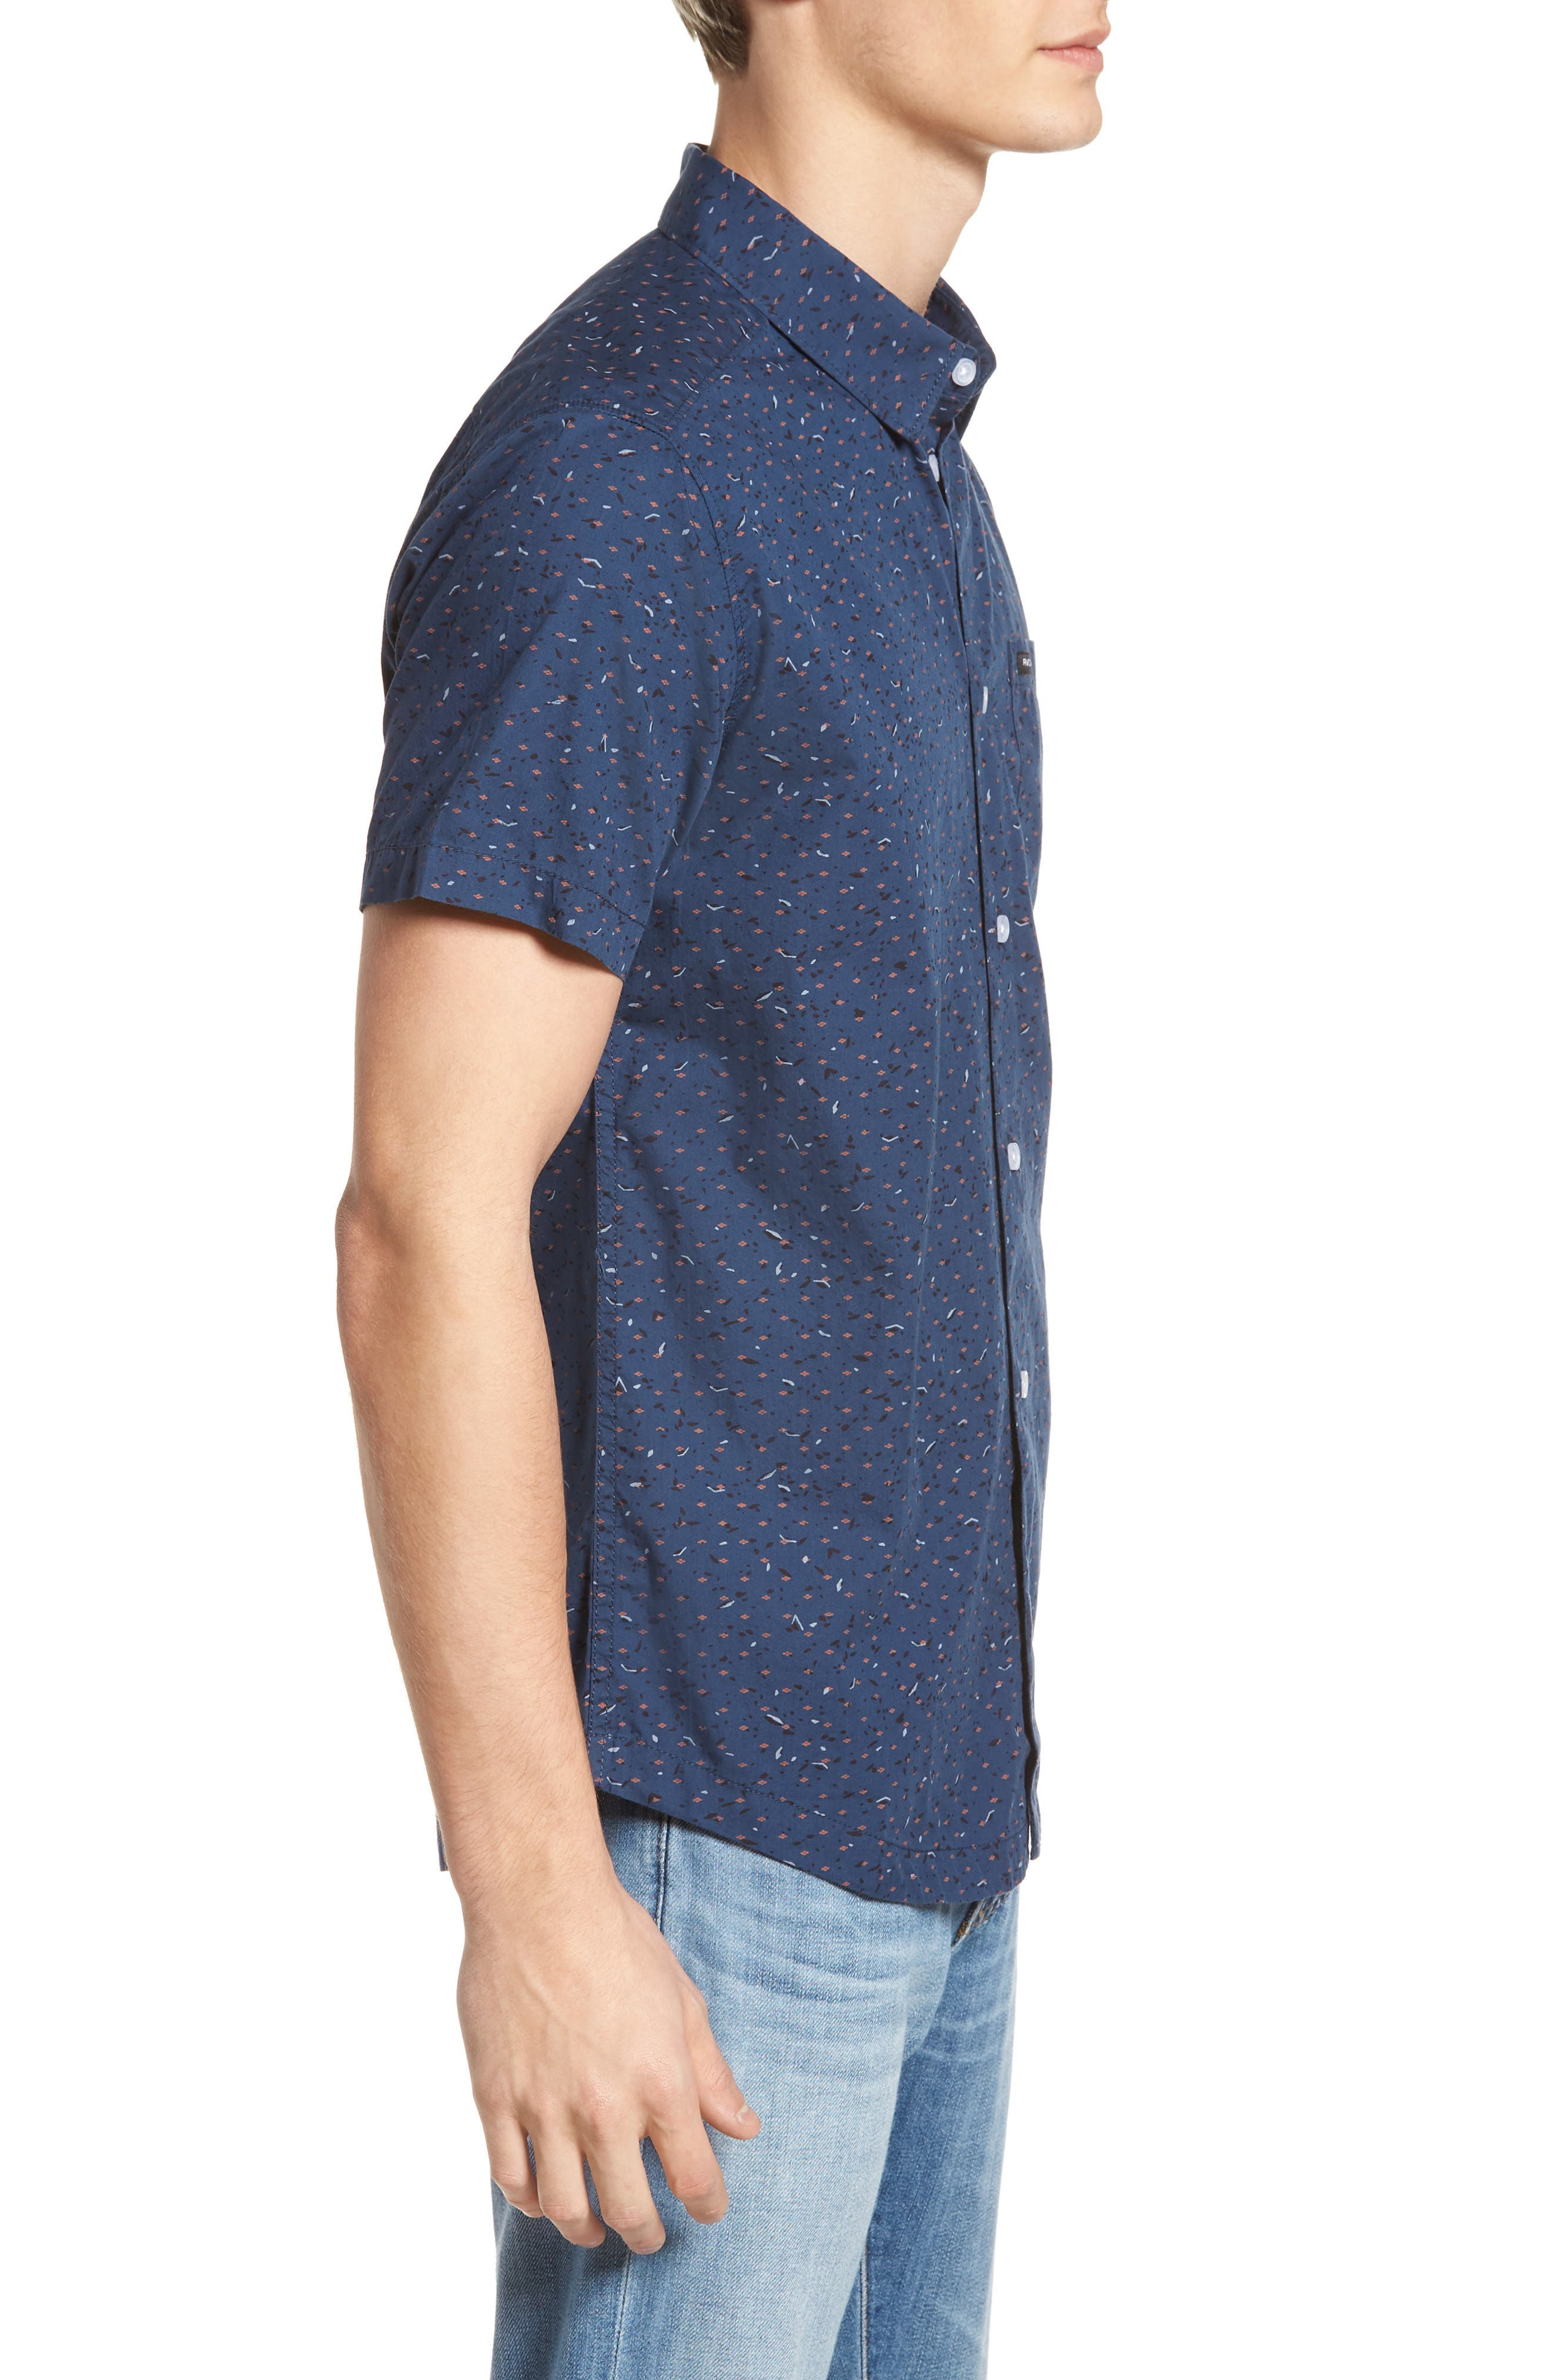 Jaded Woven Shirt,                             Alternate thumbnail 3, color,                             487